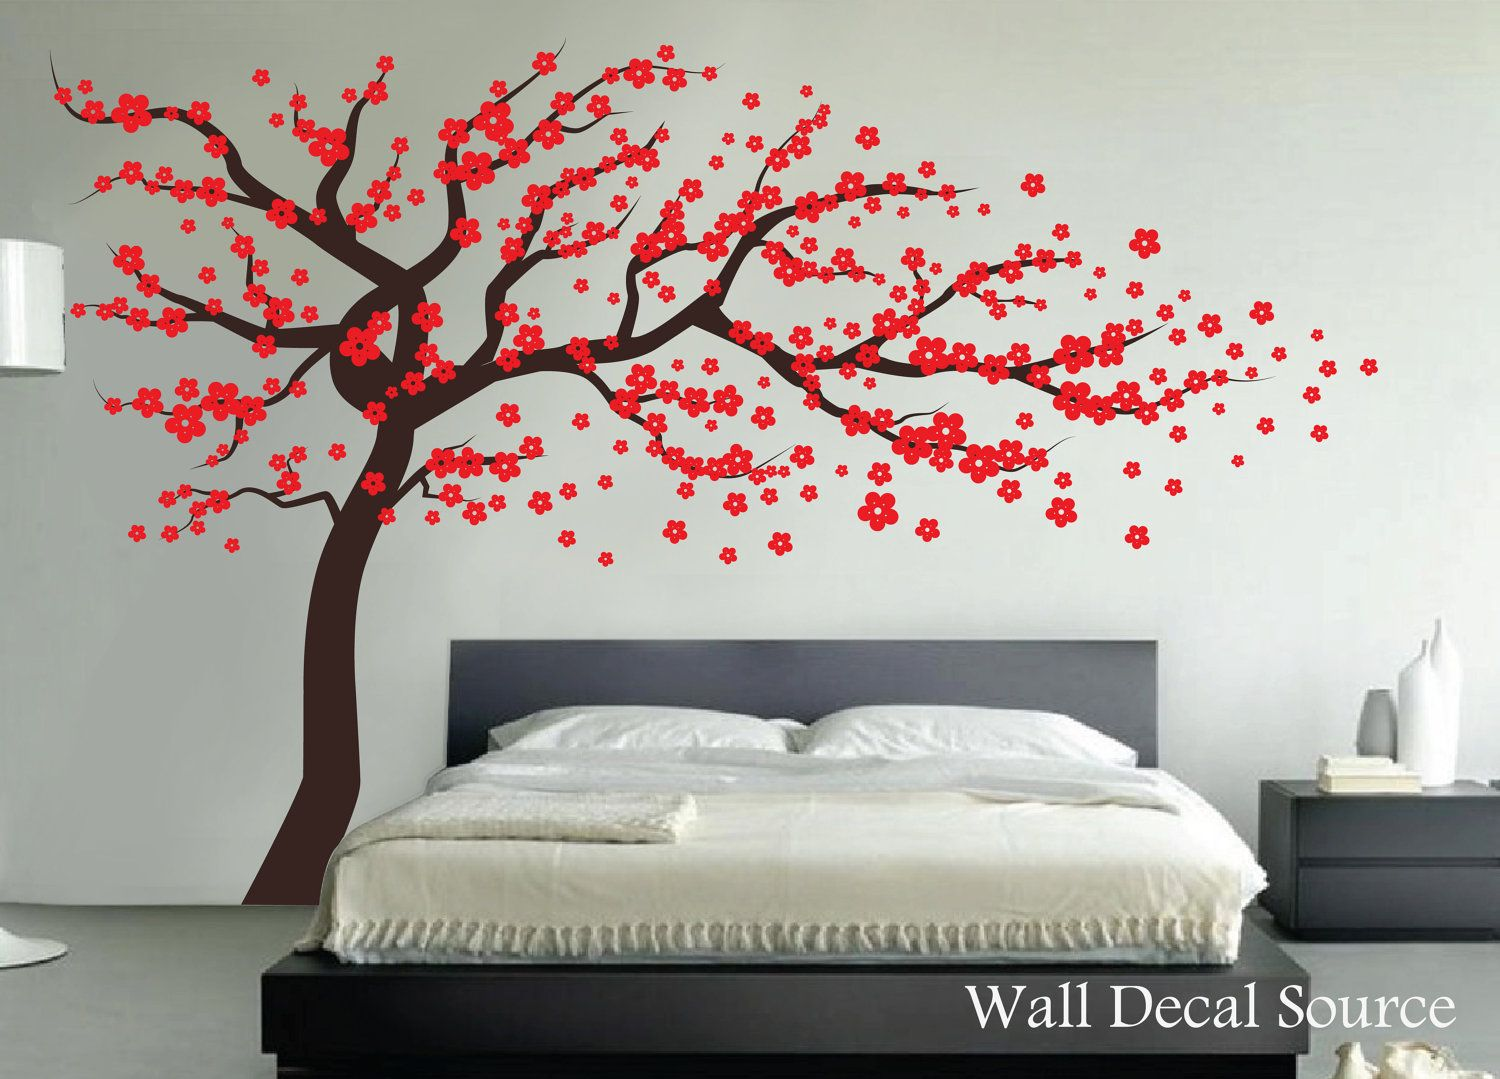 Red cherry blossom tree wall decal vinyl wall decor wall tree red cherry blossom tree wall decal vinyl wall decor wall tree decal reusable amipublicfo Gallery